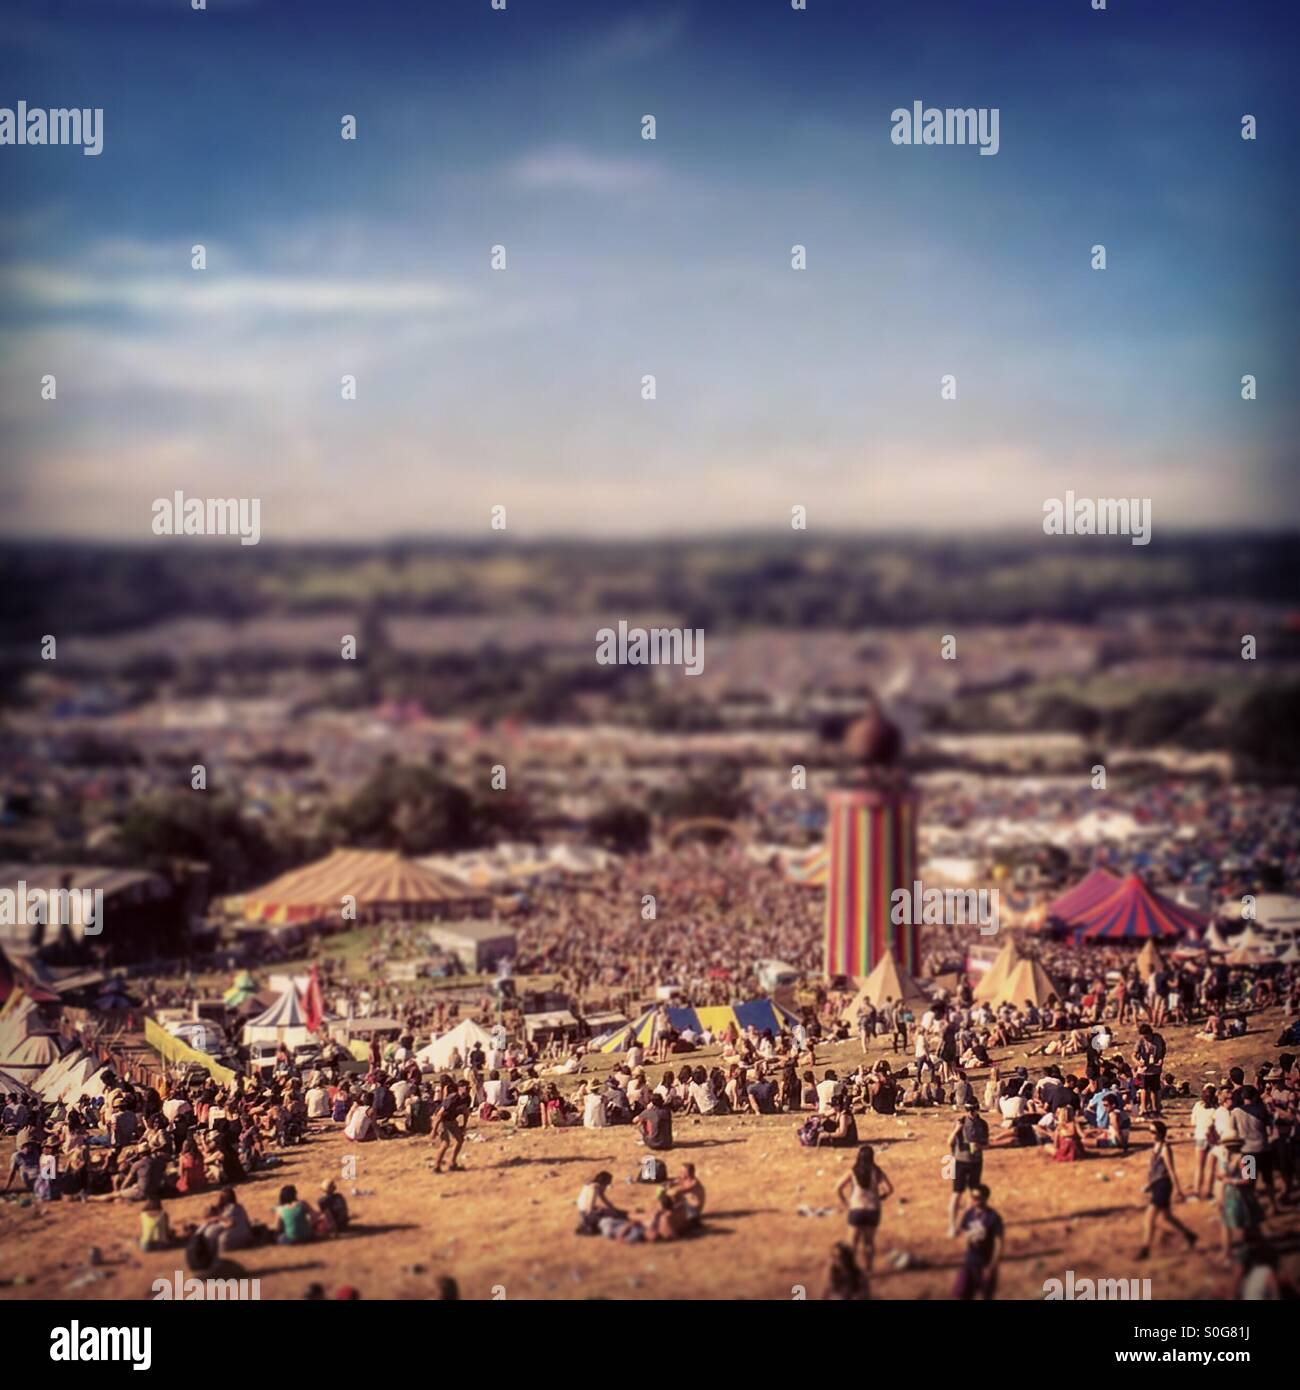 The Park area of Glastonbury - Stock Image